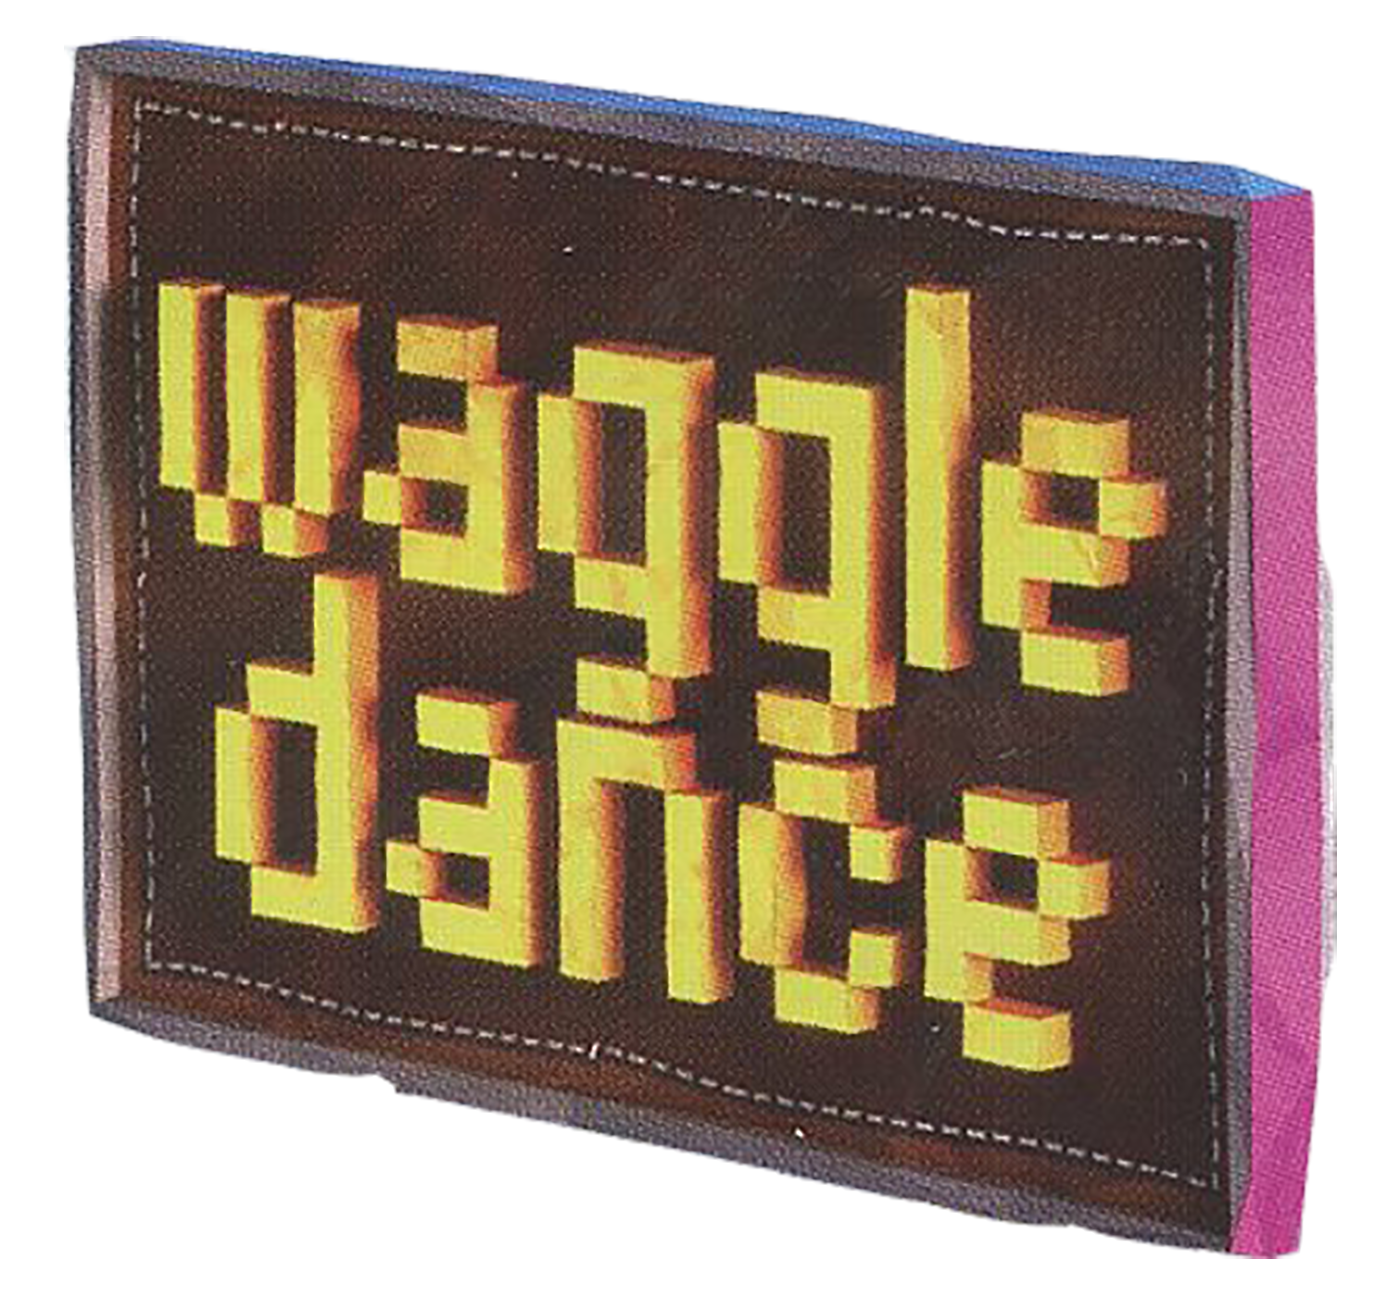 In Waggle Dance, players take on the role of members of a bee colony hoping to be the first to gather and convert pollen into a certain number of honey combs. Players perform these actions by rolli…